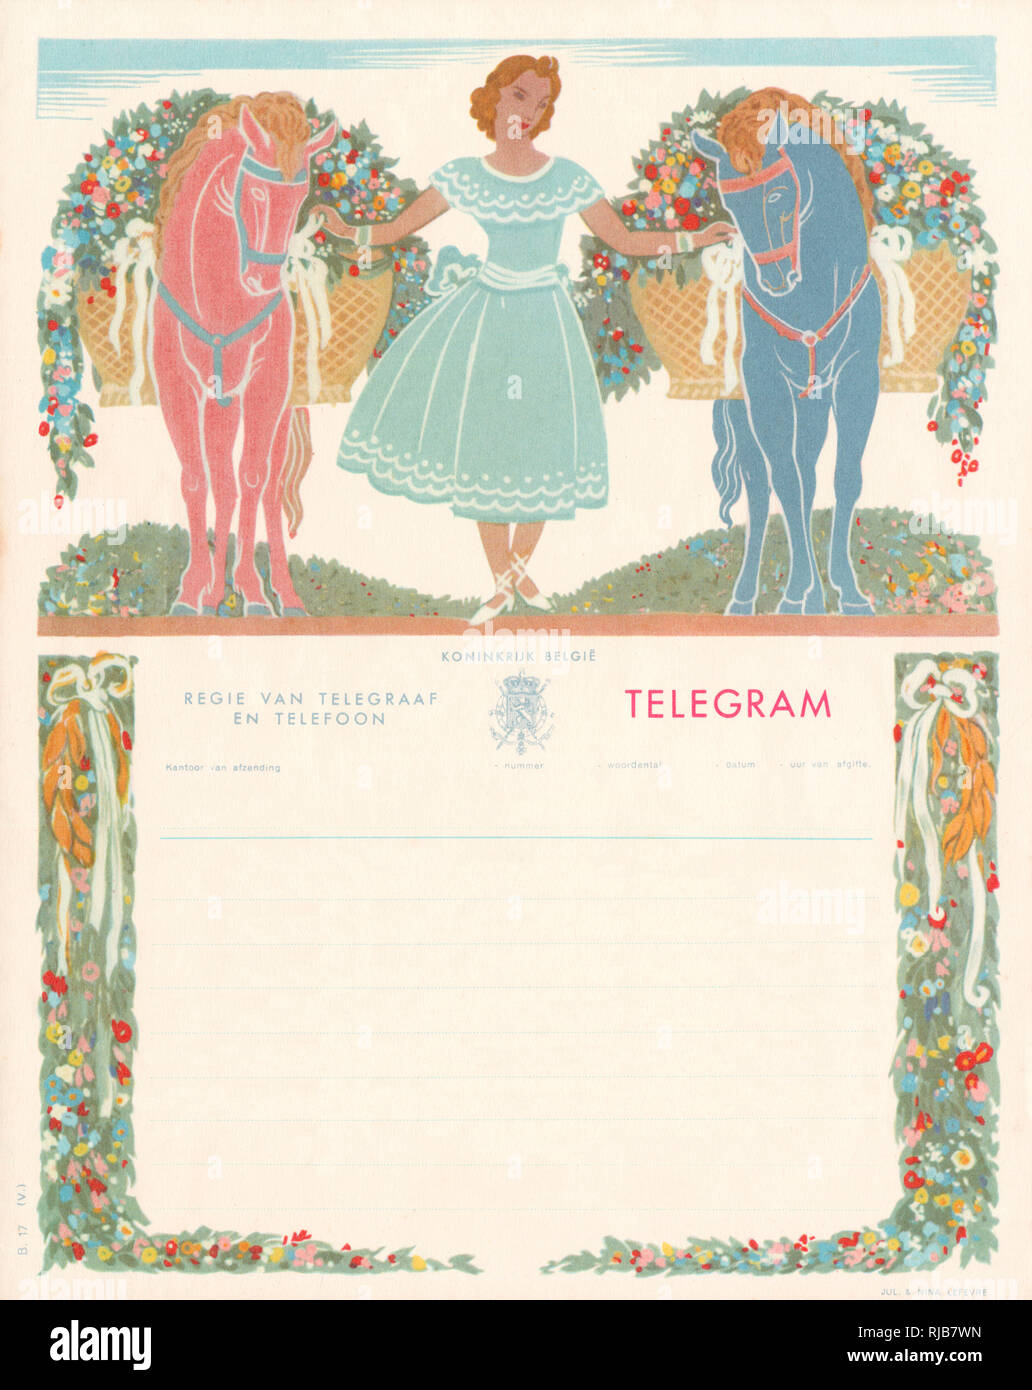 Decorative Belgian Telegram Form with a stylised illustration of a woman holding the bridles of two horses bearing baskets overflowing with flowers. - Stock Image